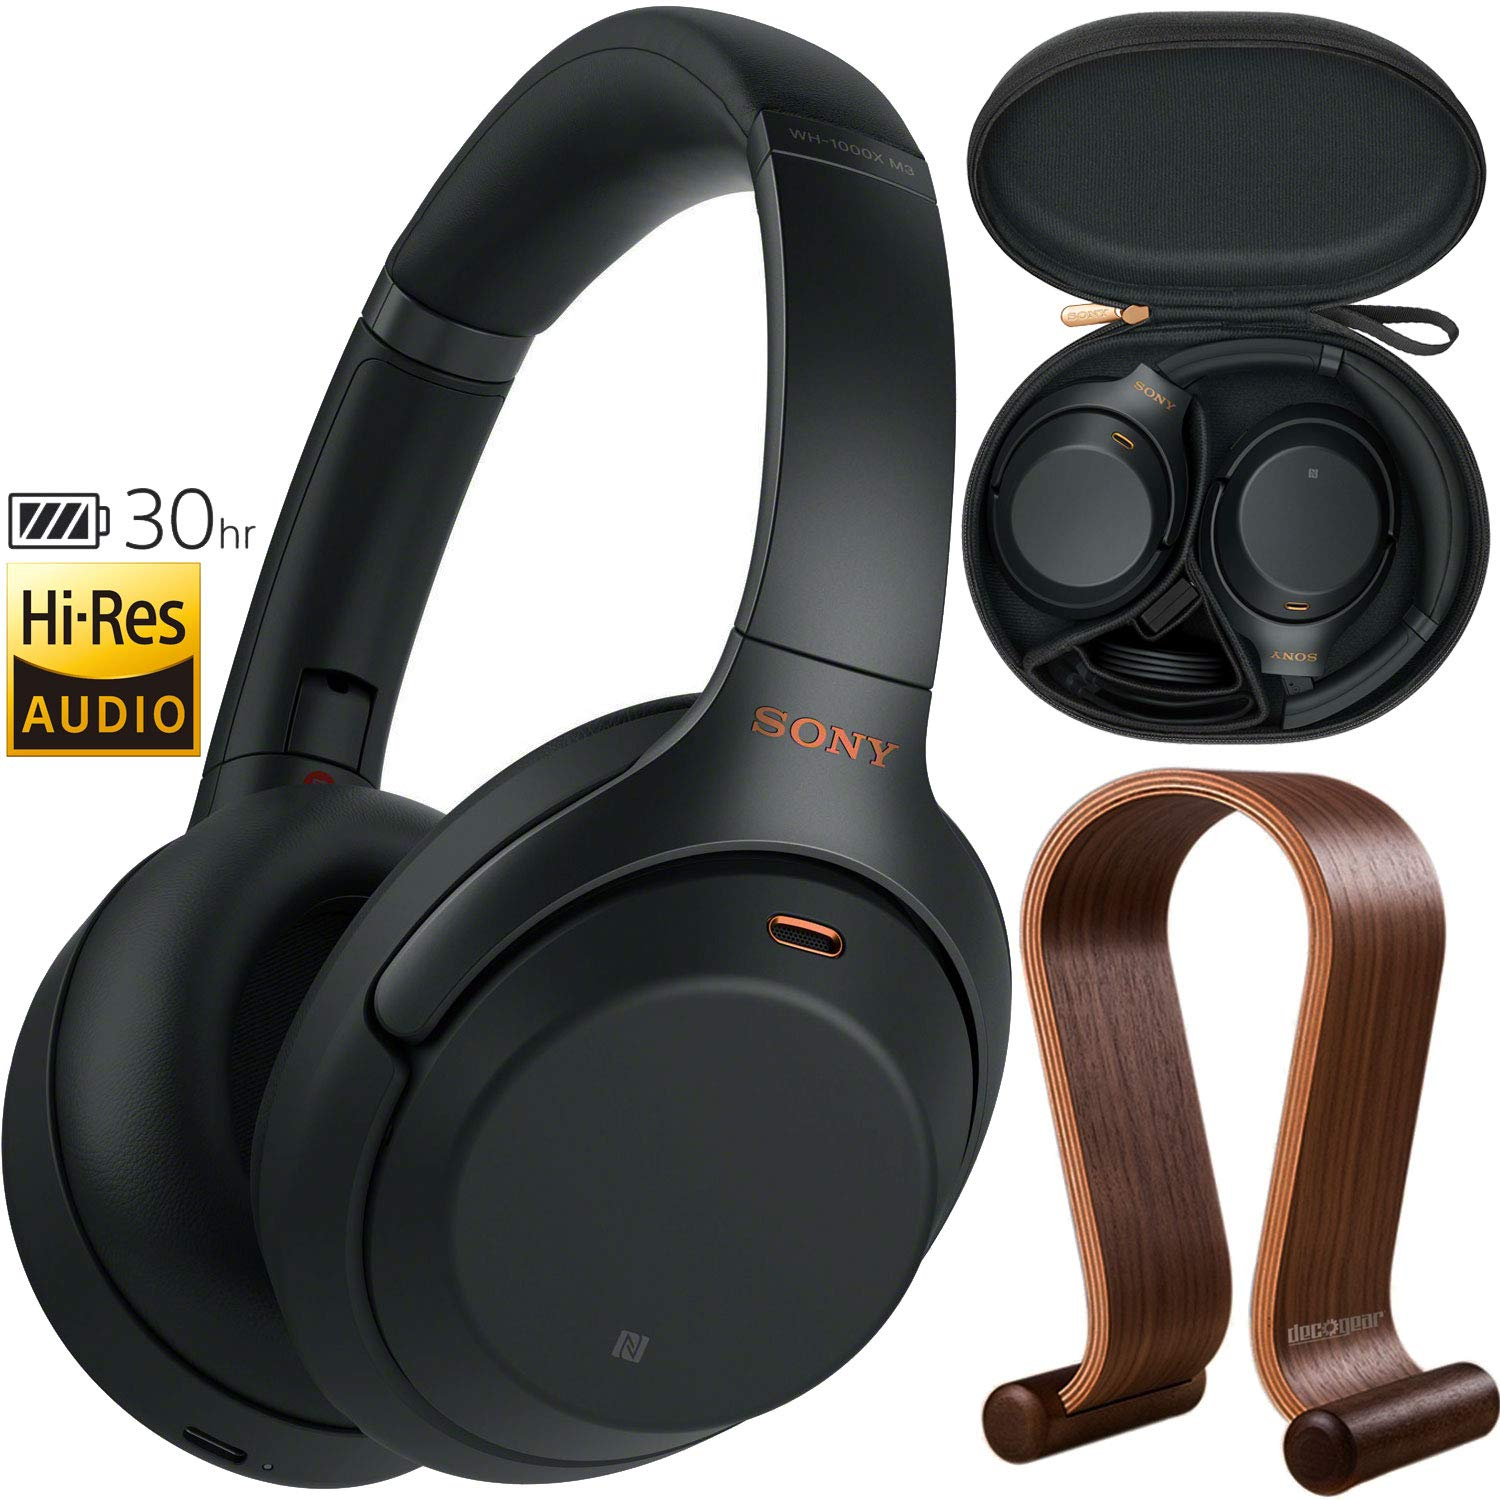 Sony WH1000XM3/B Premium Noise Cancelling Wireless Headphones w/Microphone (Black) + Wood Headphone Stand + Headphone Case